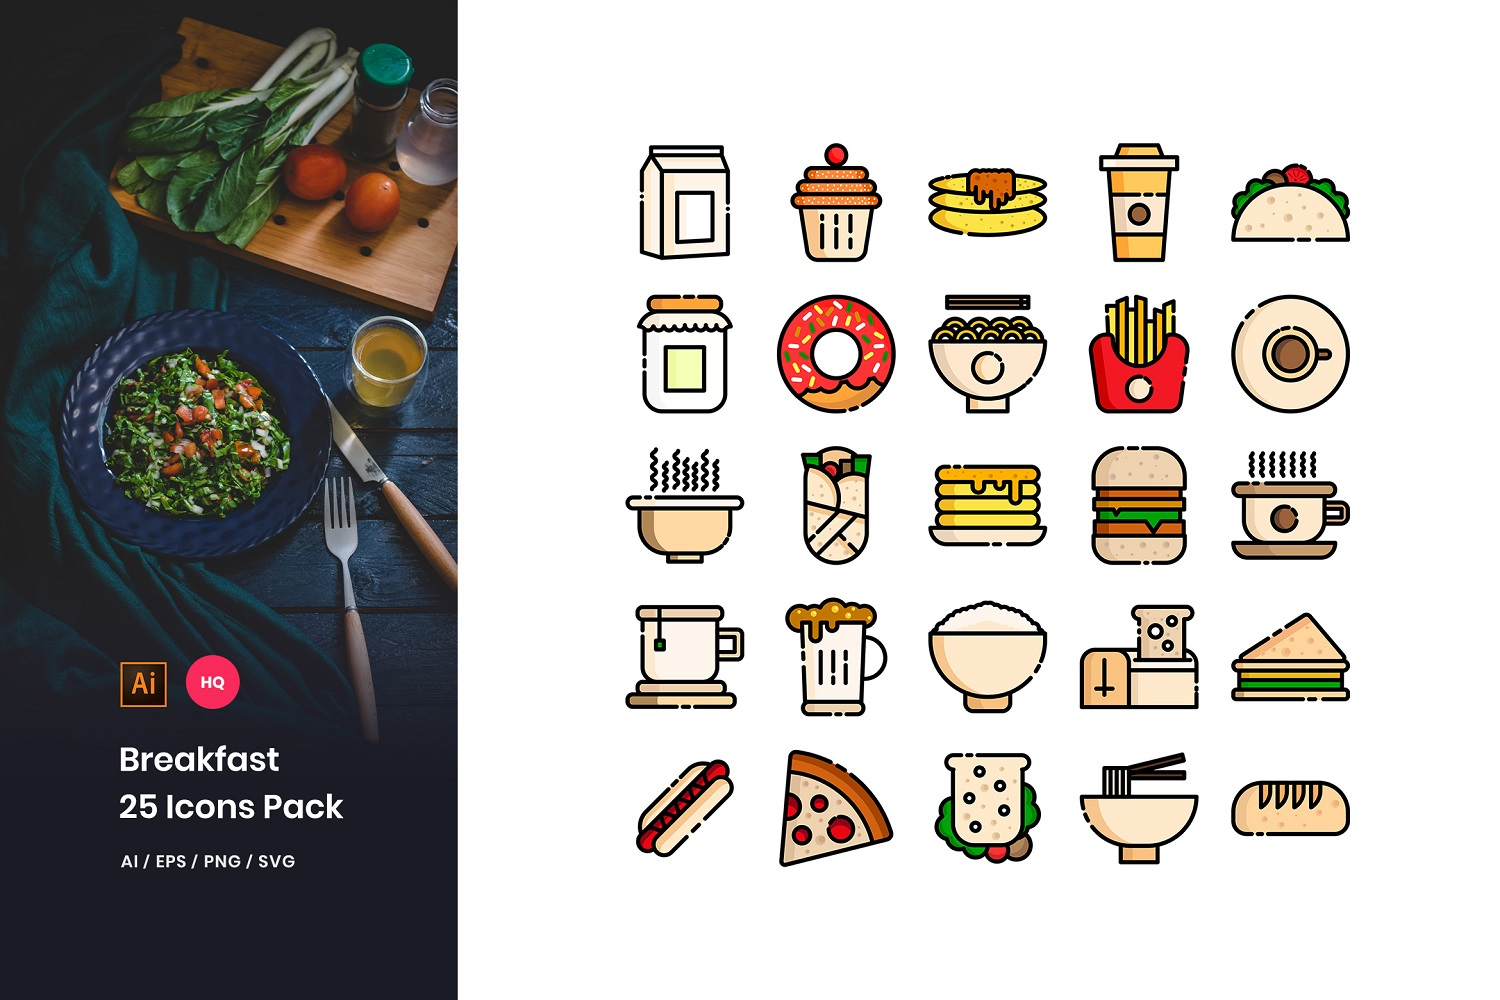 Breakfast Toys Pack Iconset Template